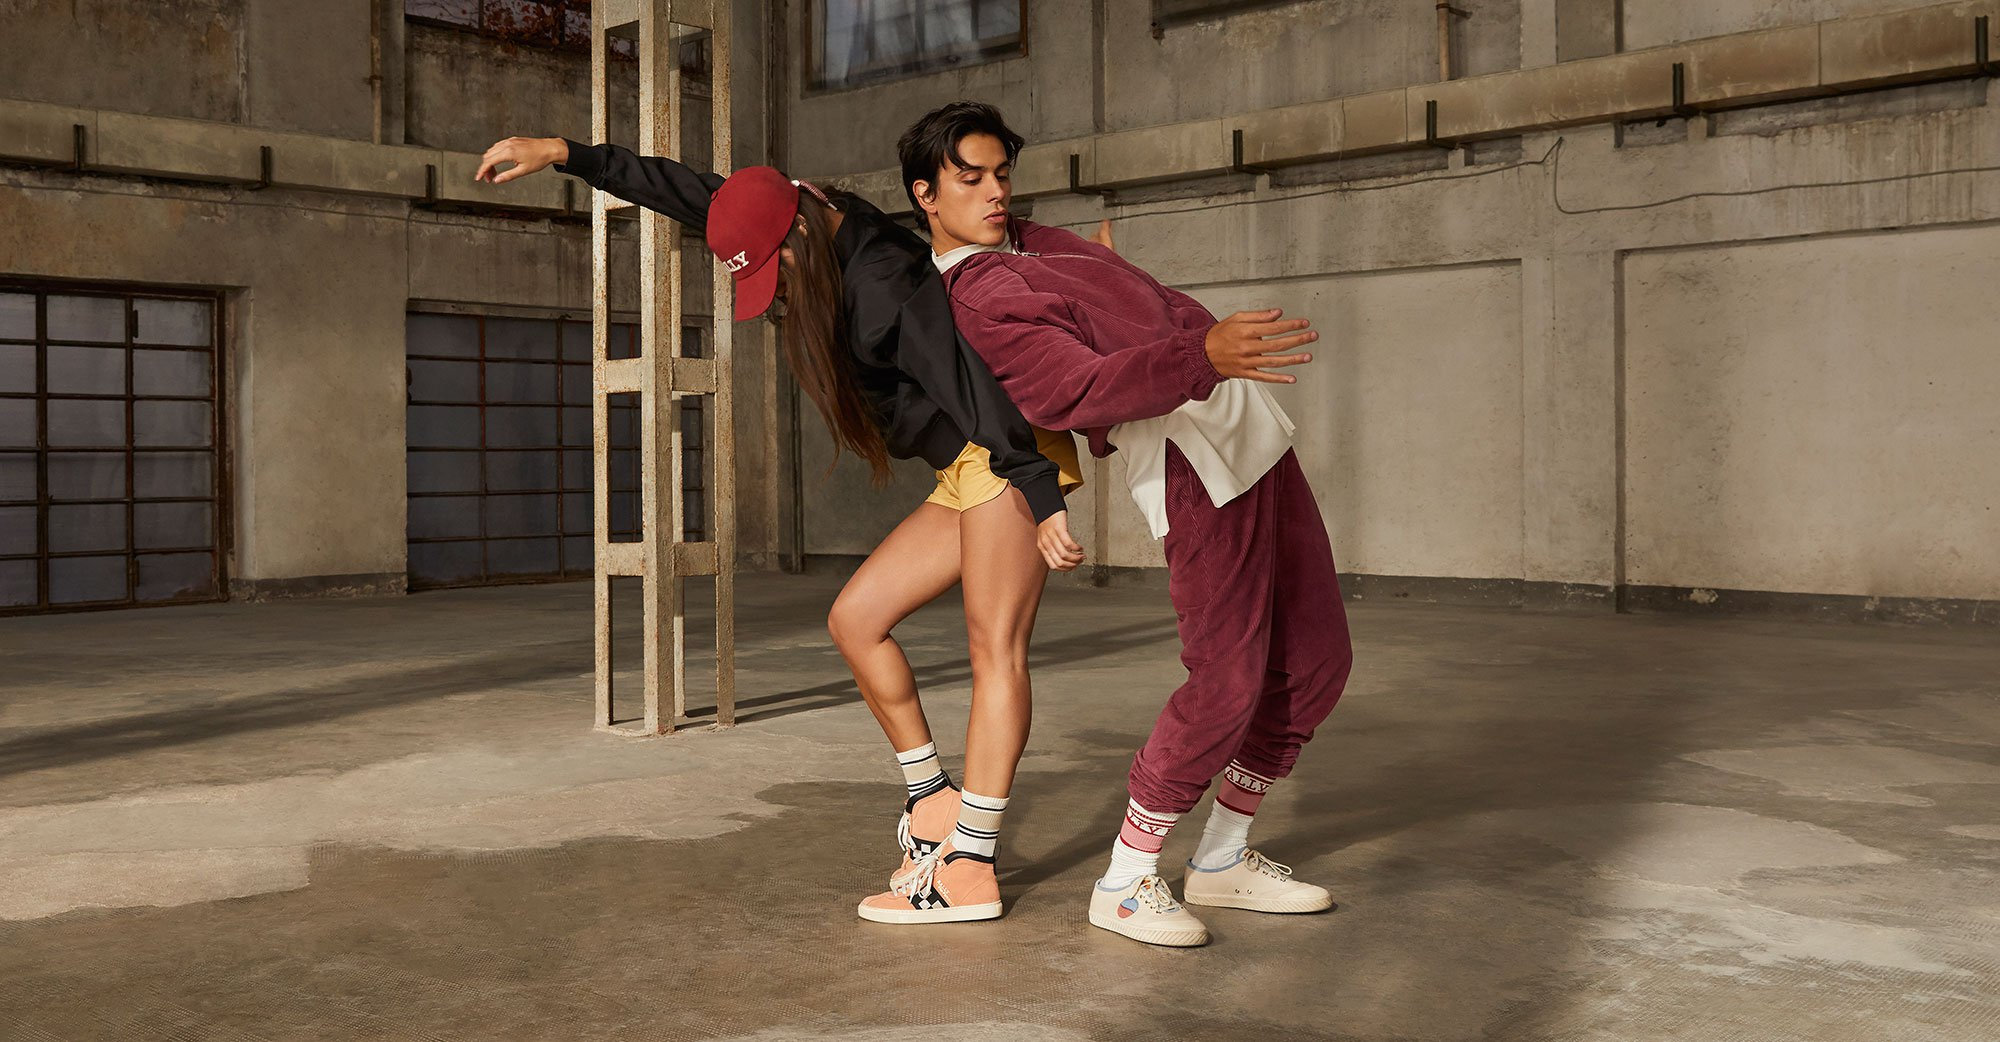 BALLY RETRO SNEAKERS campaign, movement directed by Pat Boguslawski